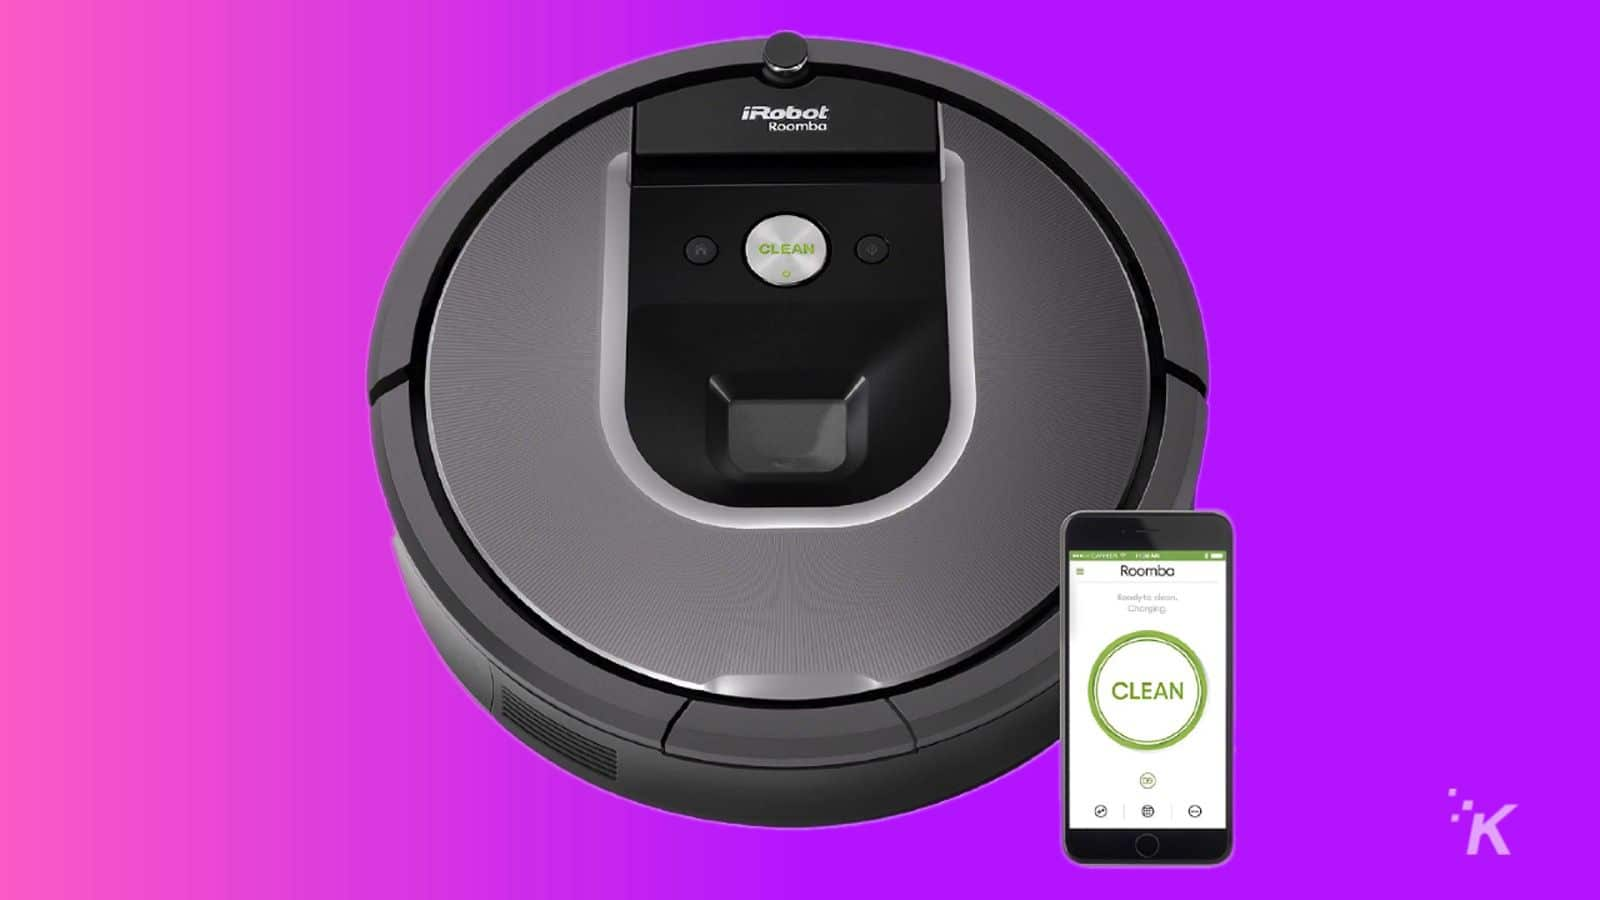 irobot roomba 960 knowtechie deal